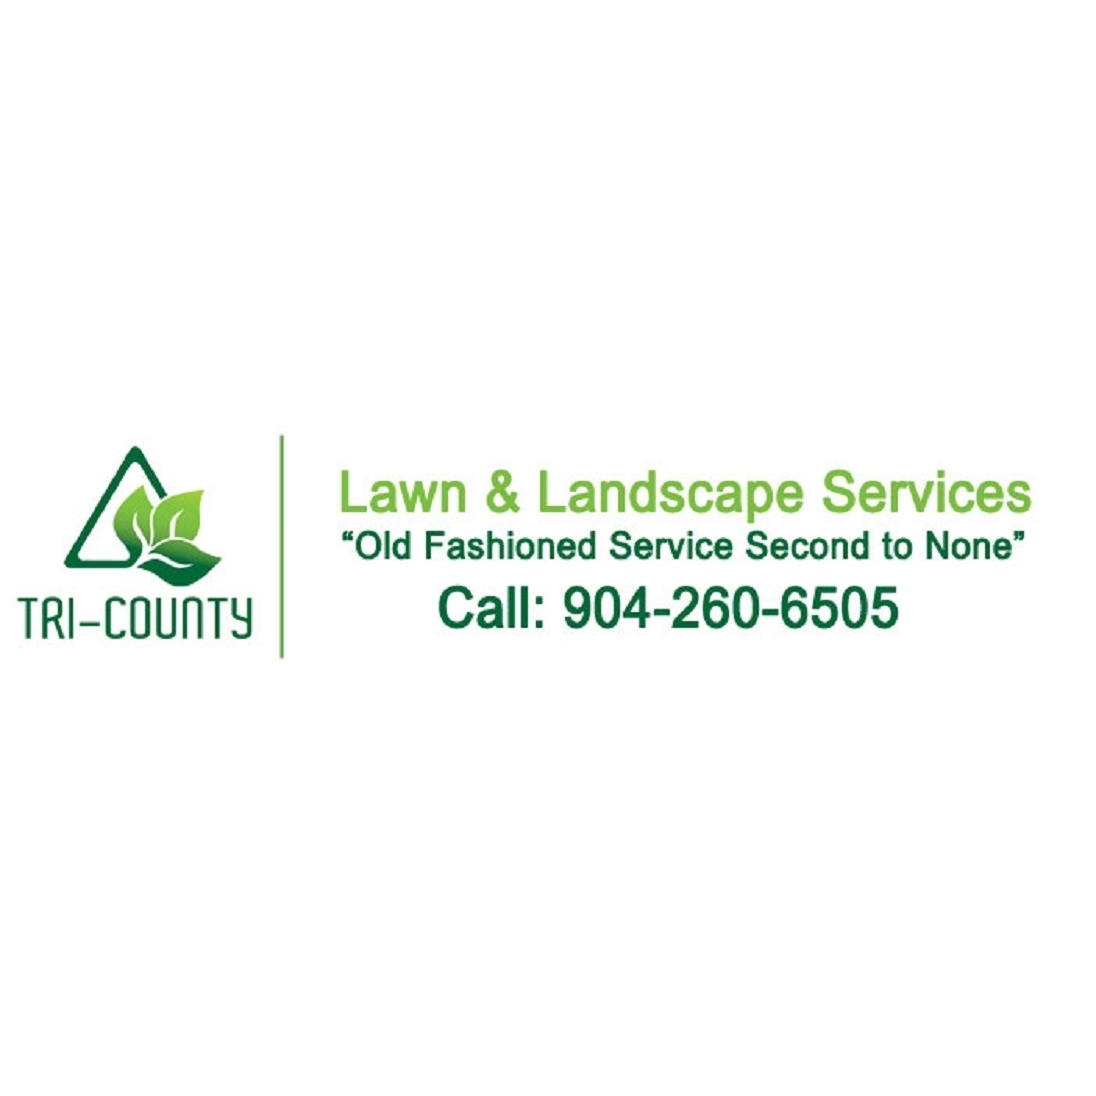 Tri-County Lawn and Landscaping Services - Jacksonville, FL 32223 - (904)260-6505 | ShowMeLocal.com